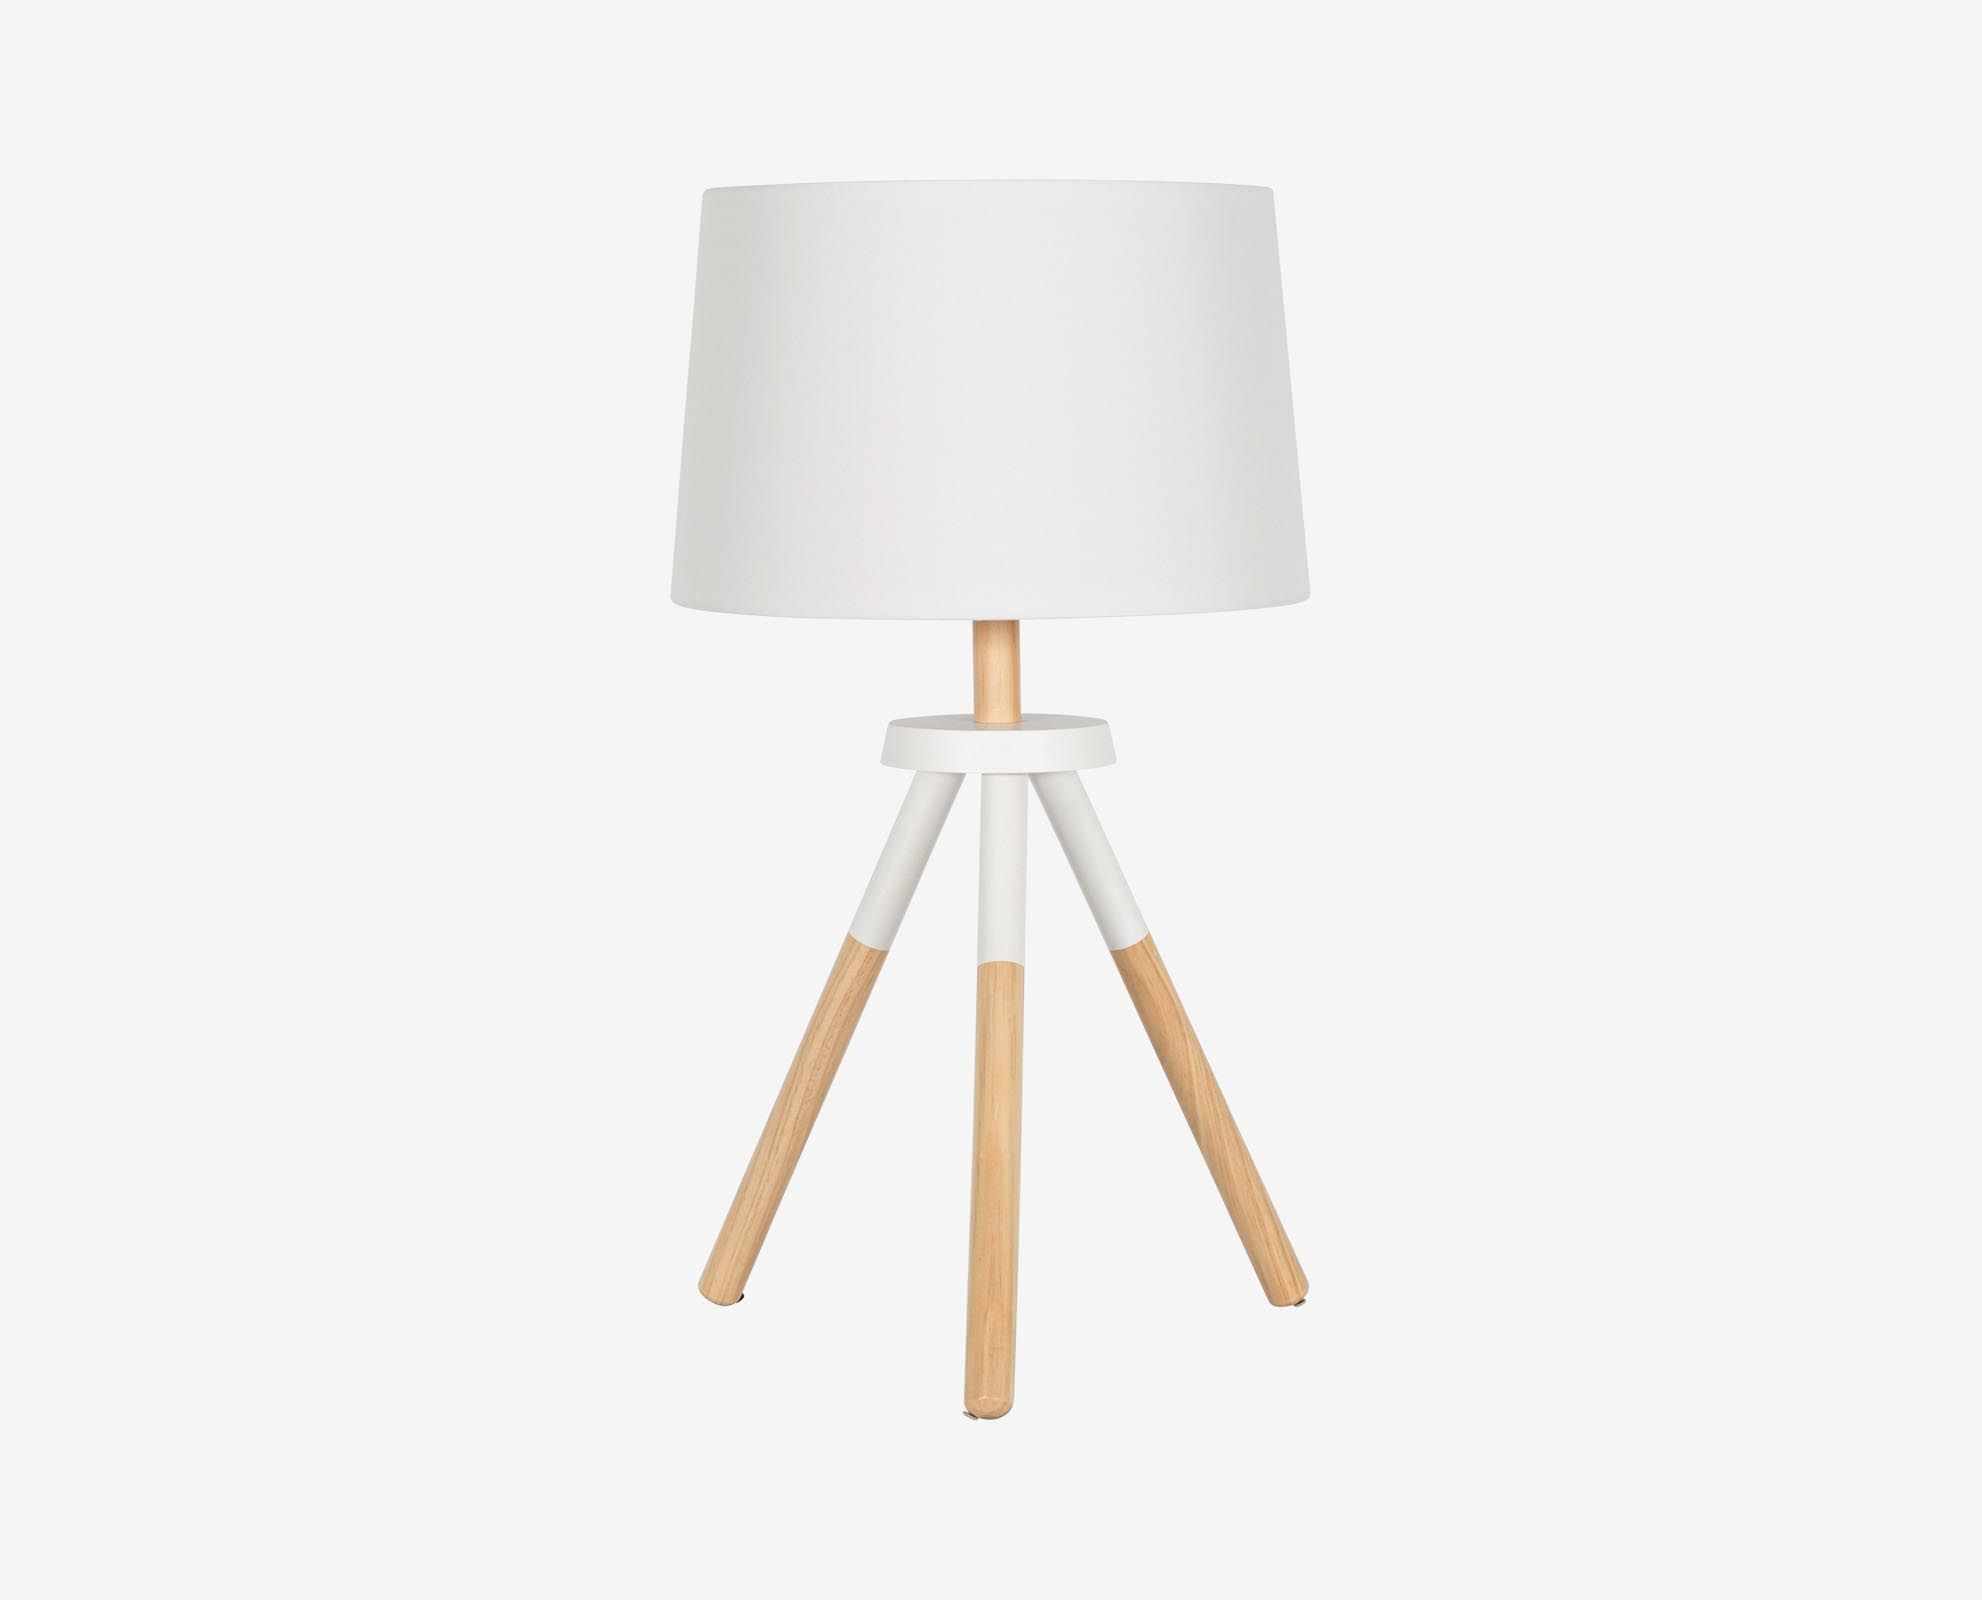 Dania Update Your Living Room With The Wooden Tripod Table Lamp